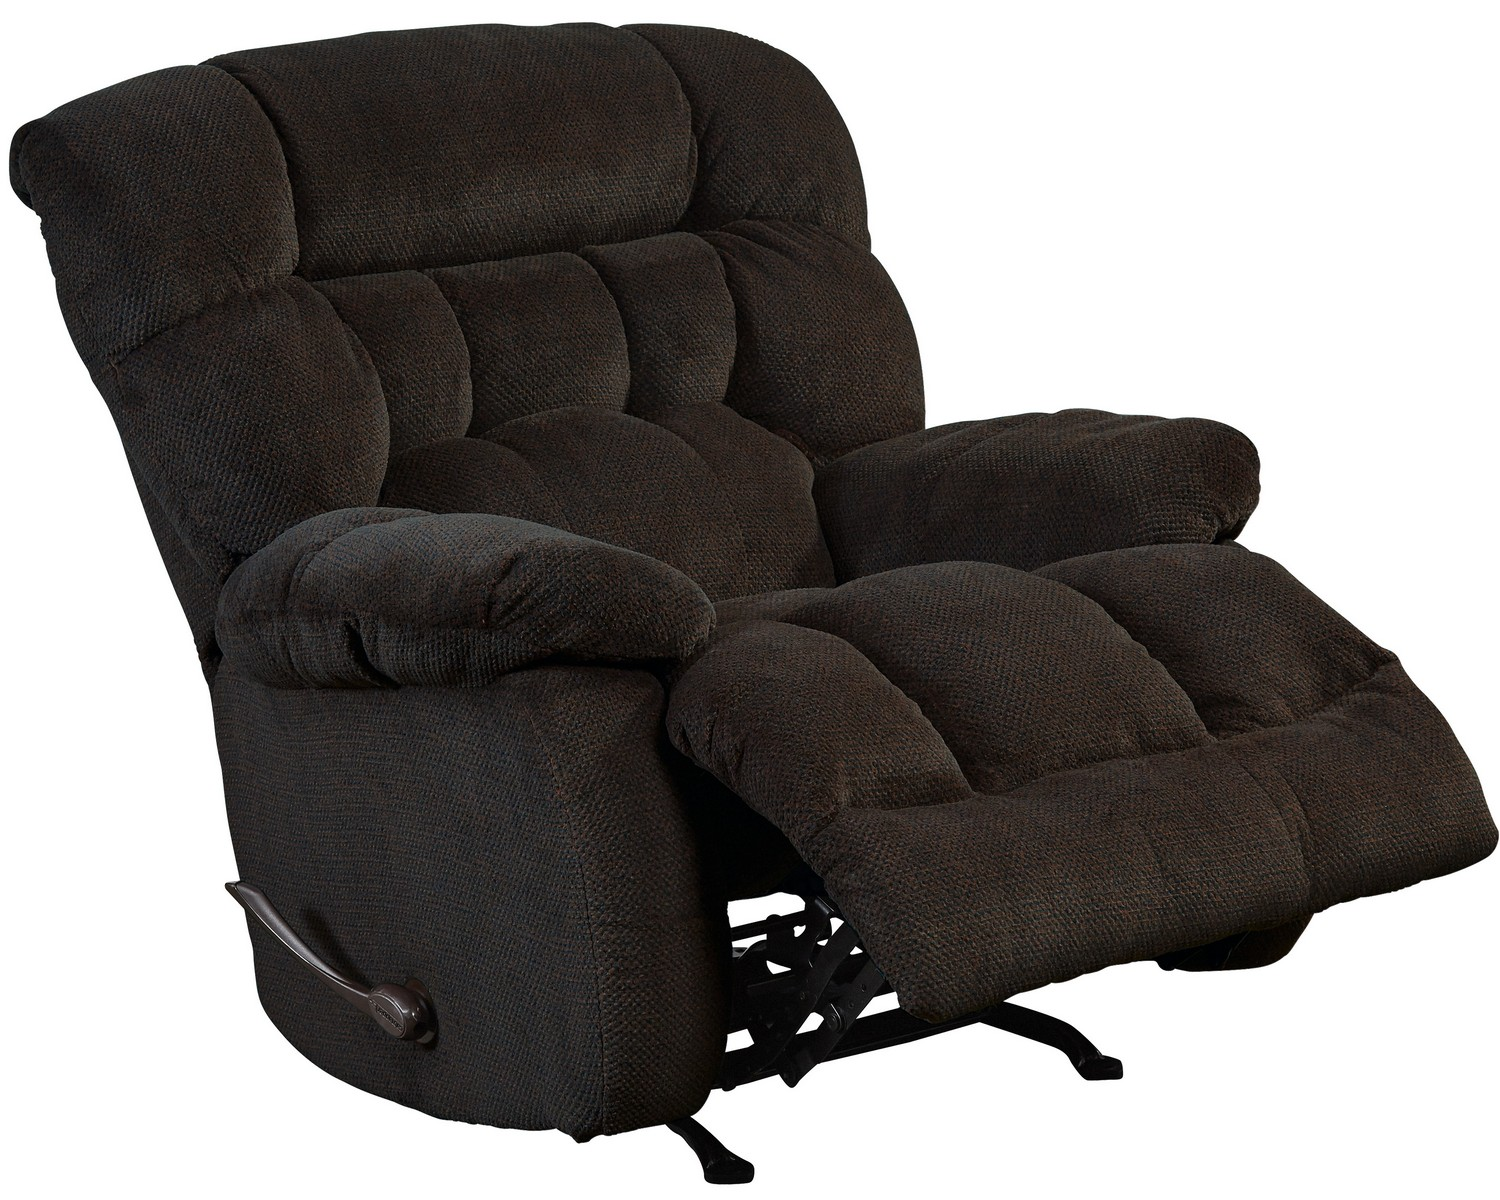 CatNapper Daly Chaise Rocker Recliner - Chocolate